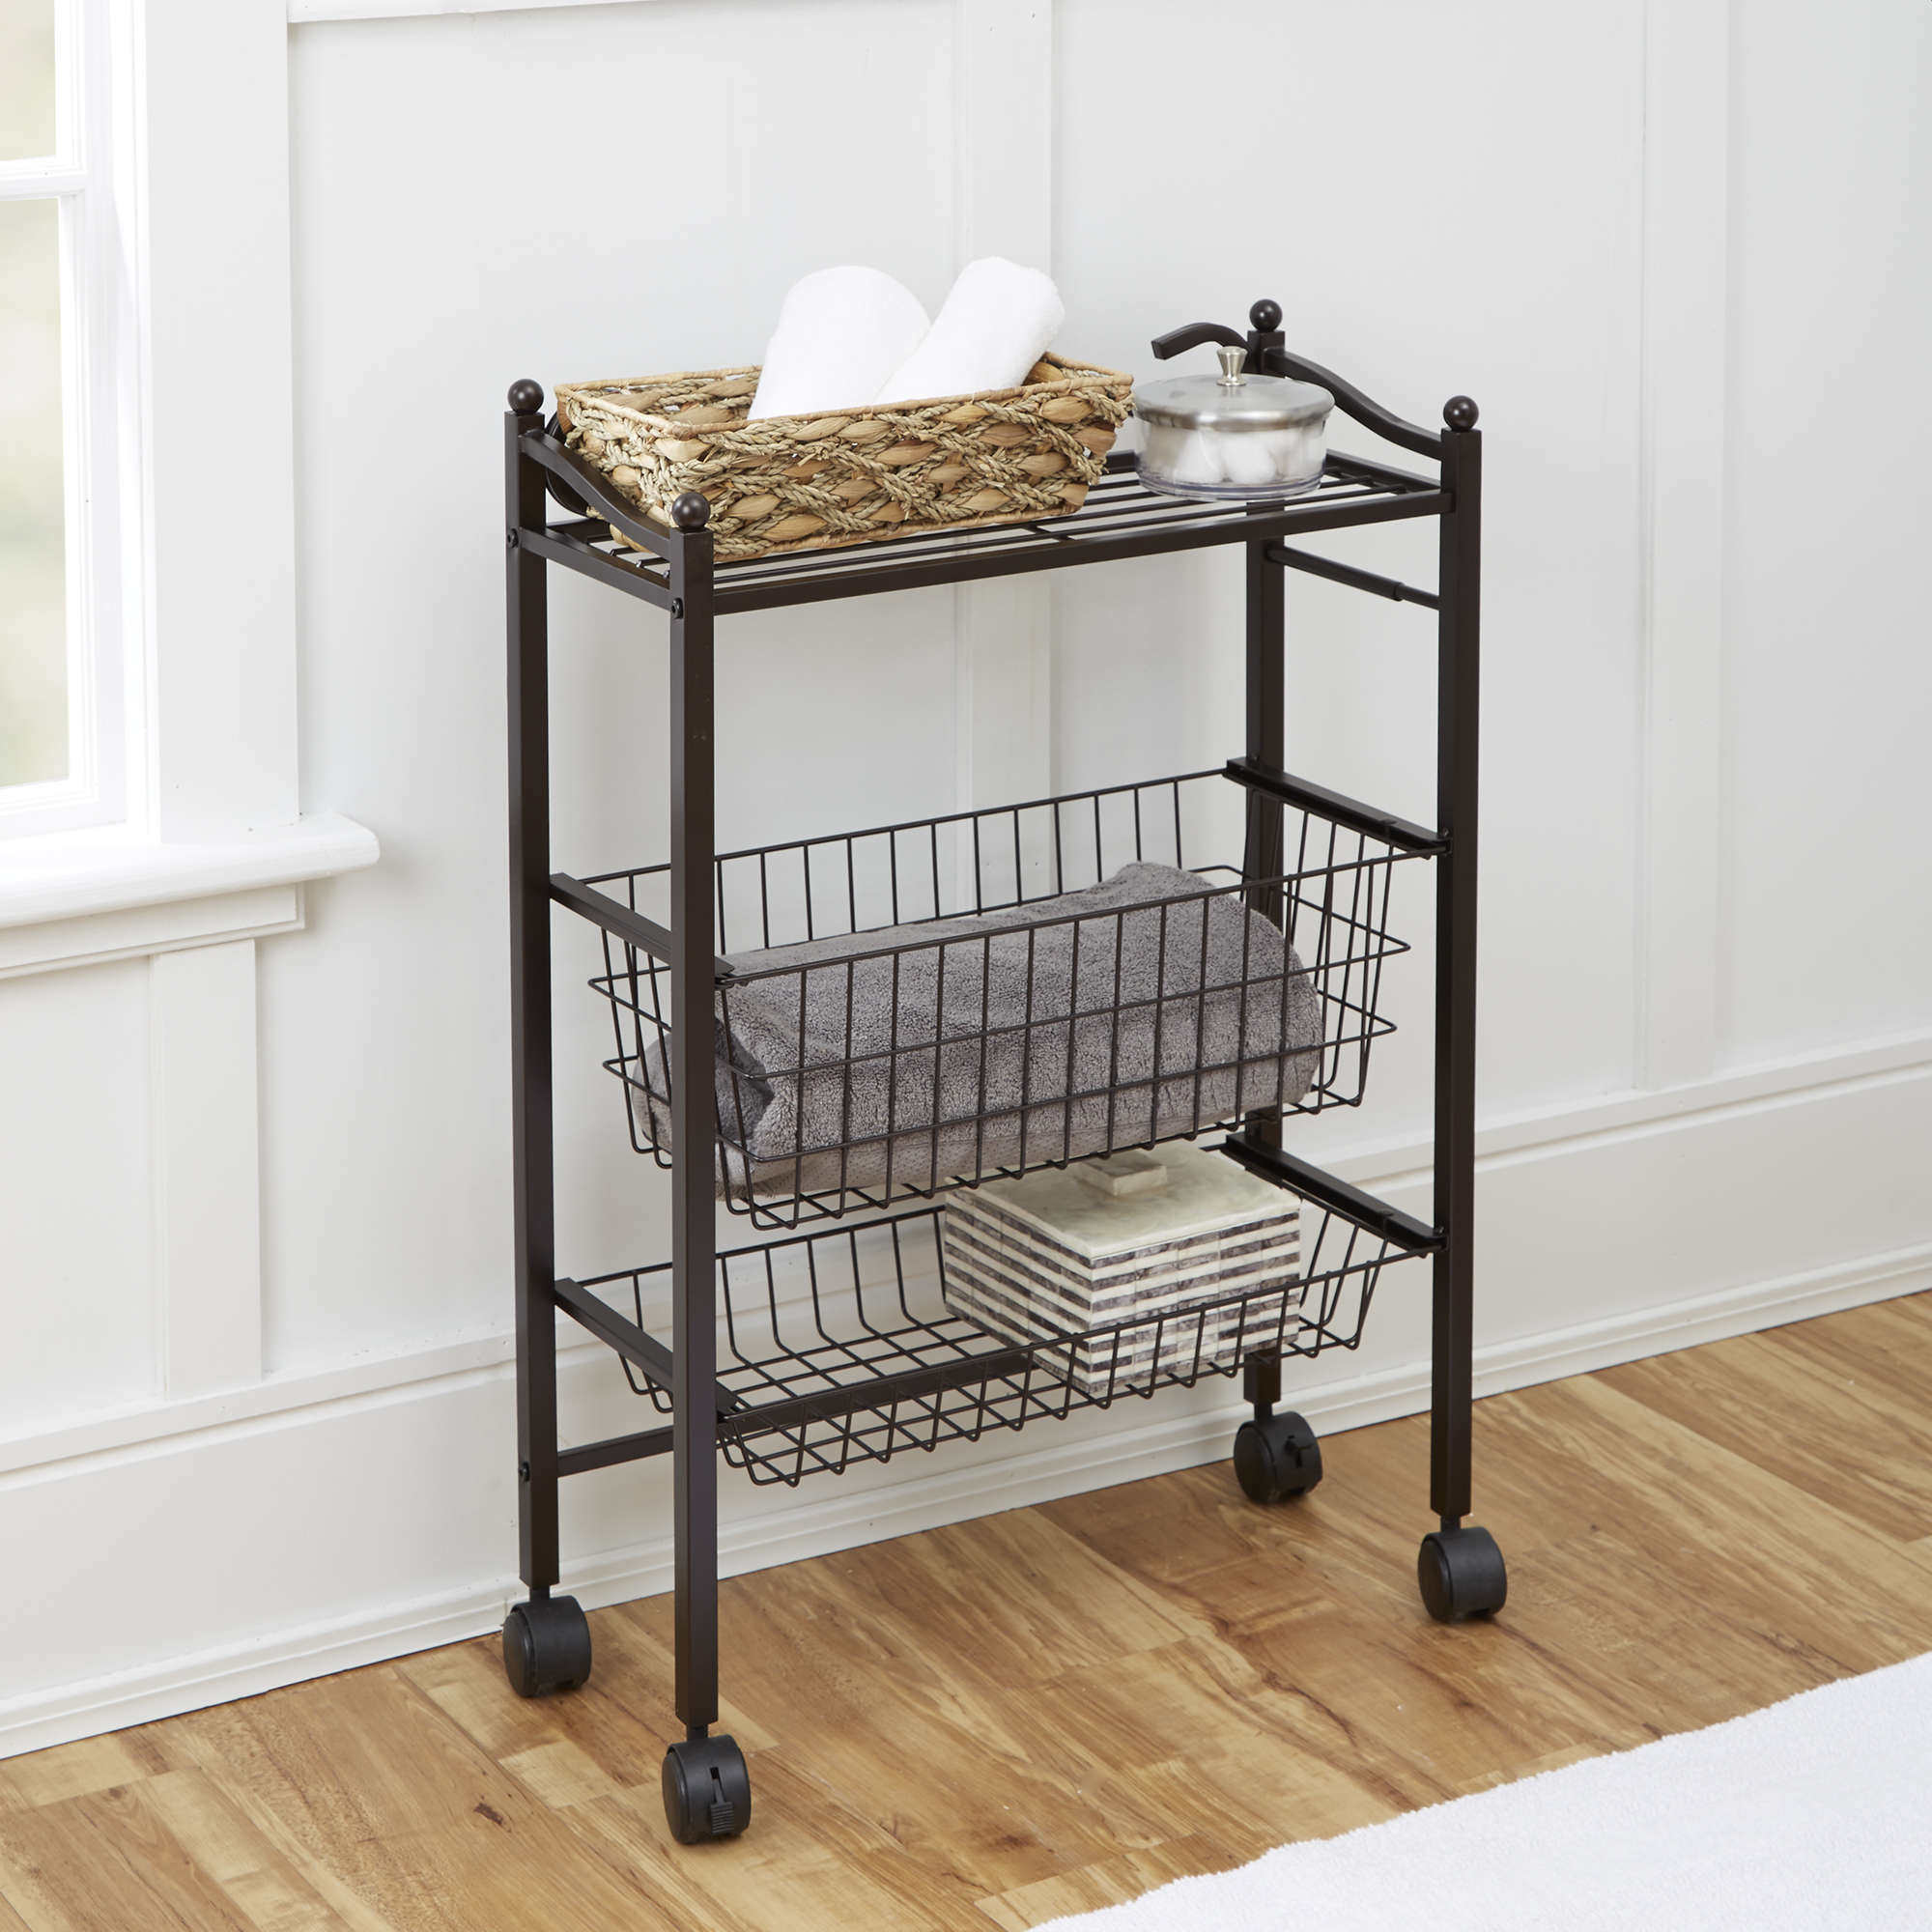 Chapter Bathroom Storage Cart with Top Shelf and Two Storage Baskets